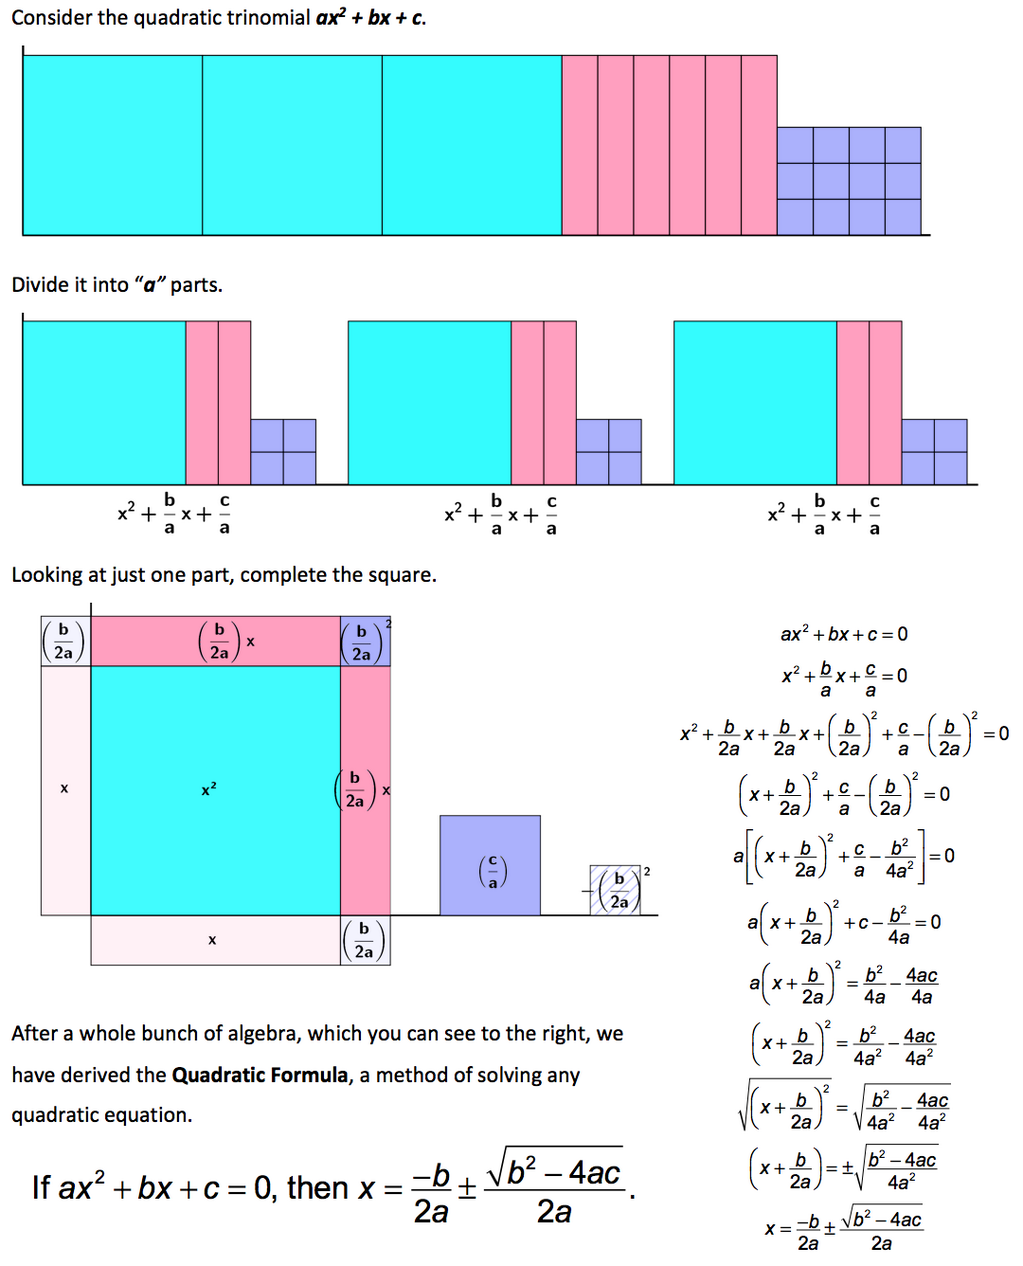 Completing The Square  Google Search  Maths  Pinterest  Search, The  Square And Squares